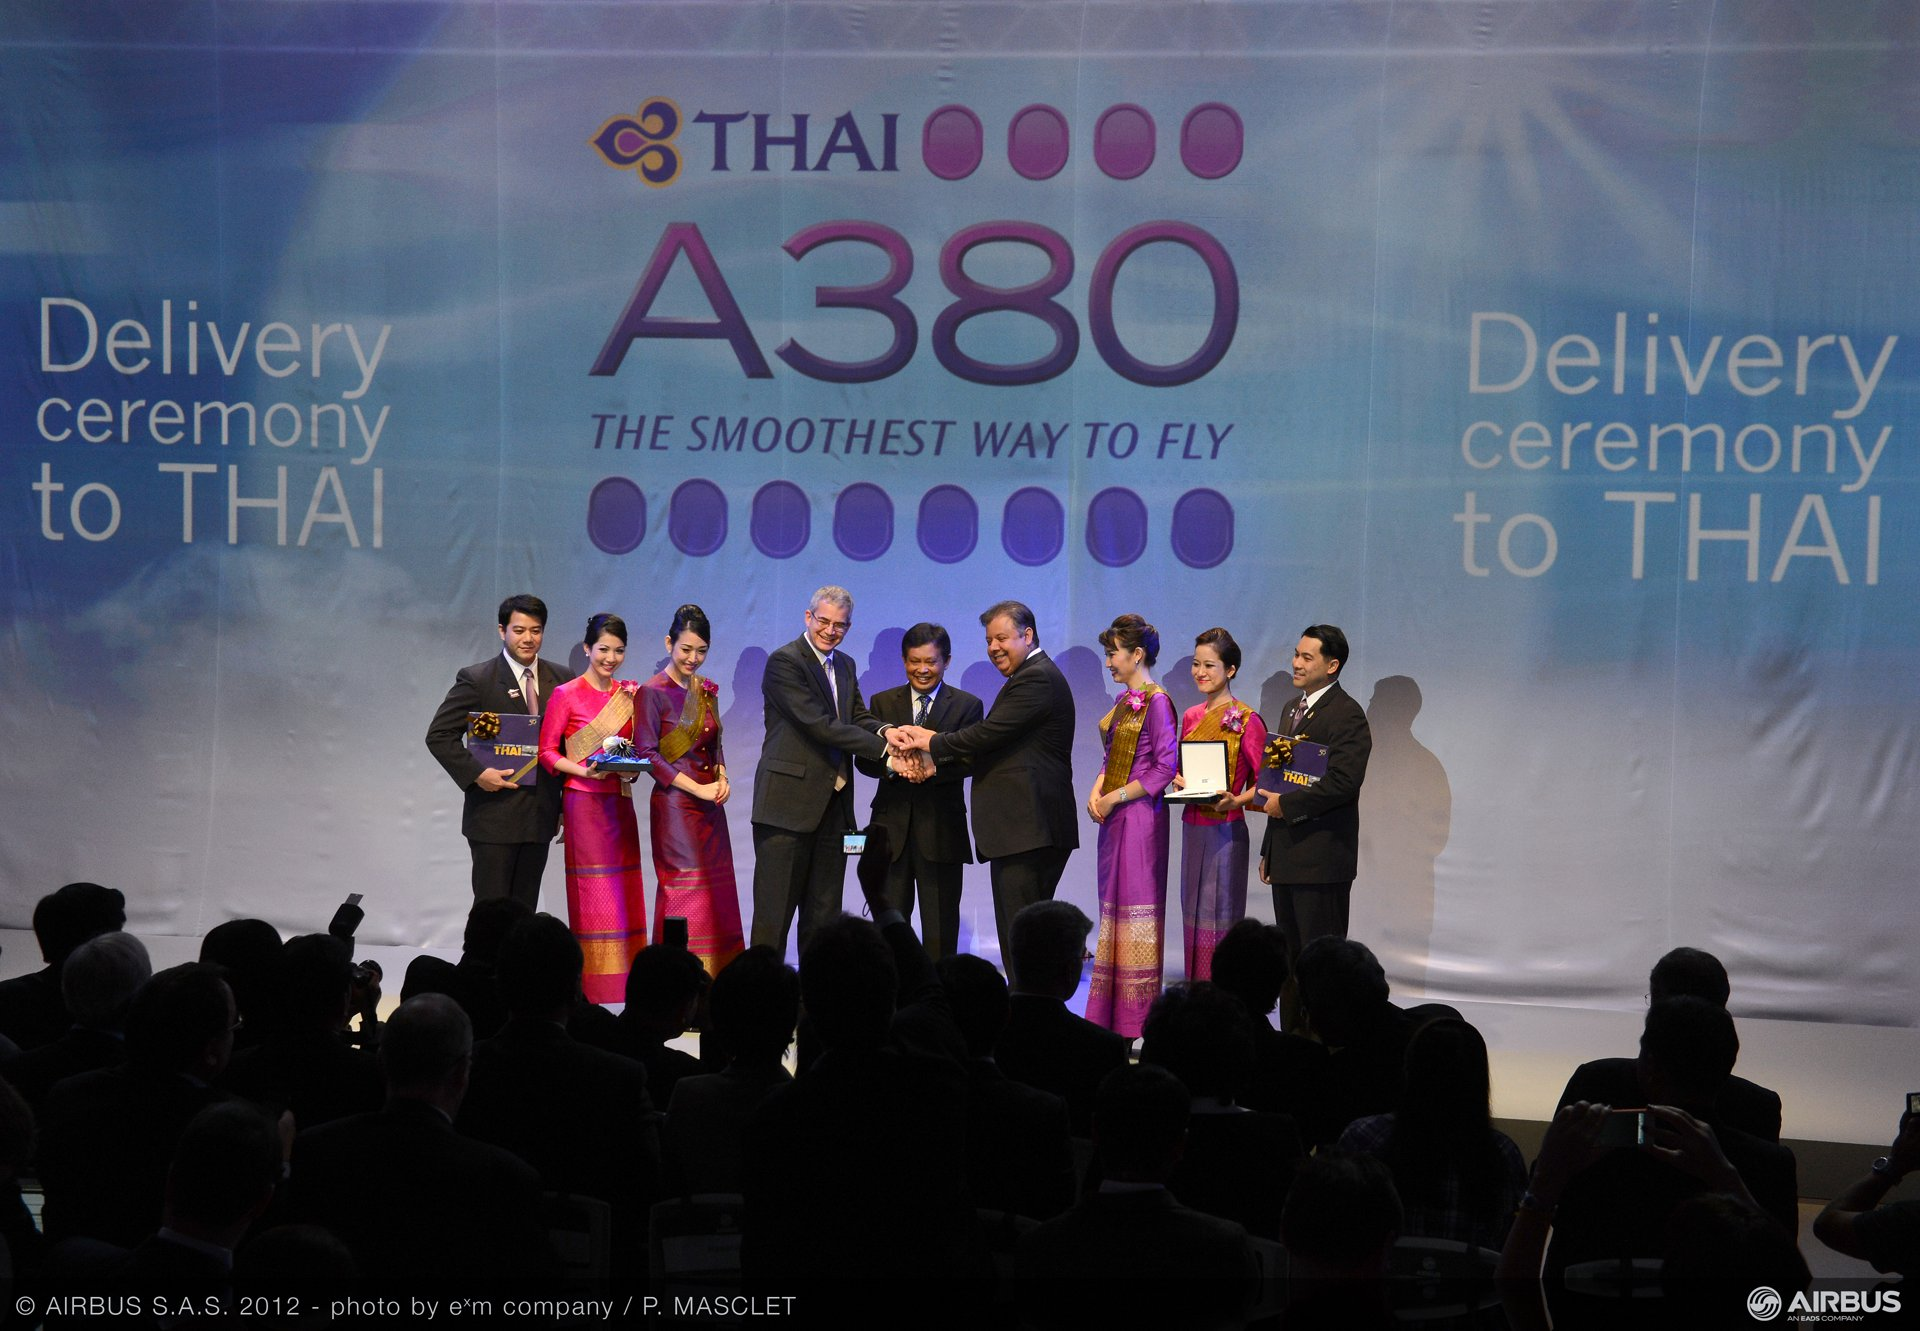 A380 THAI delivery ceremony